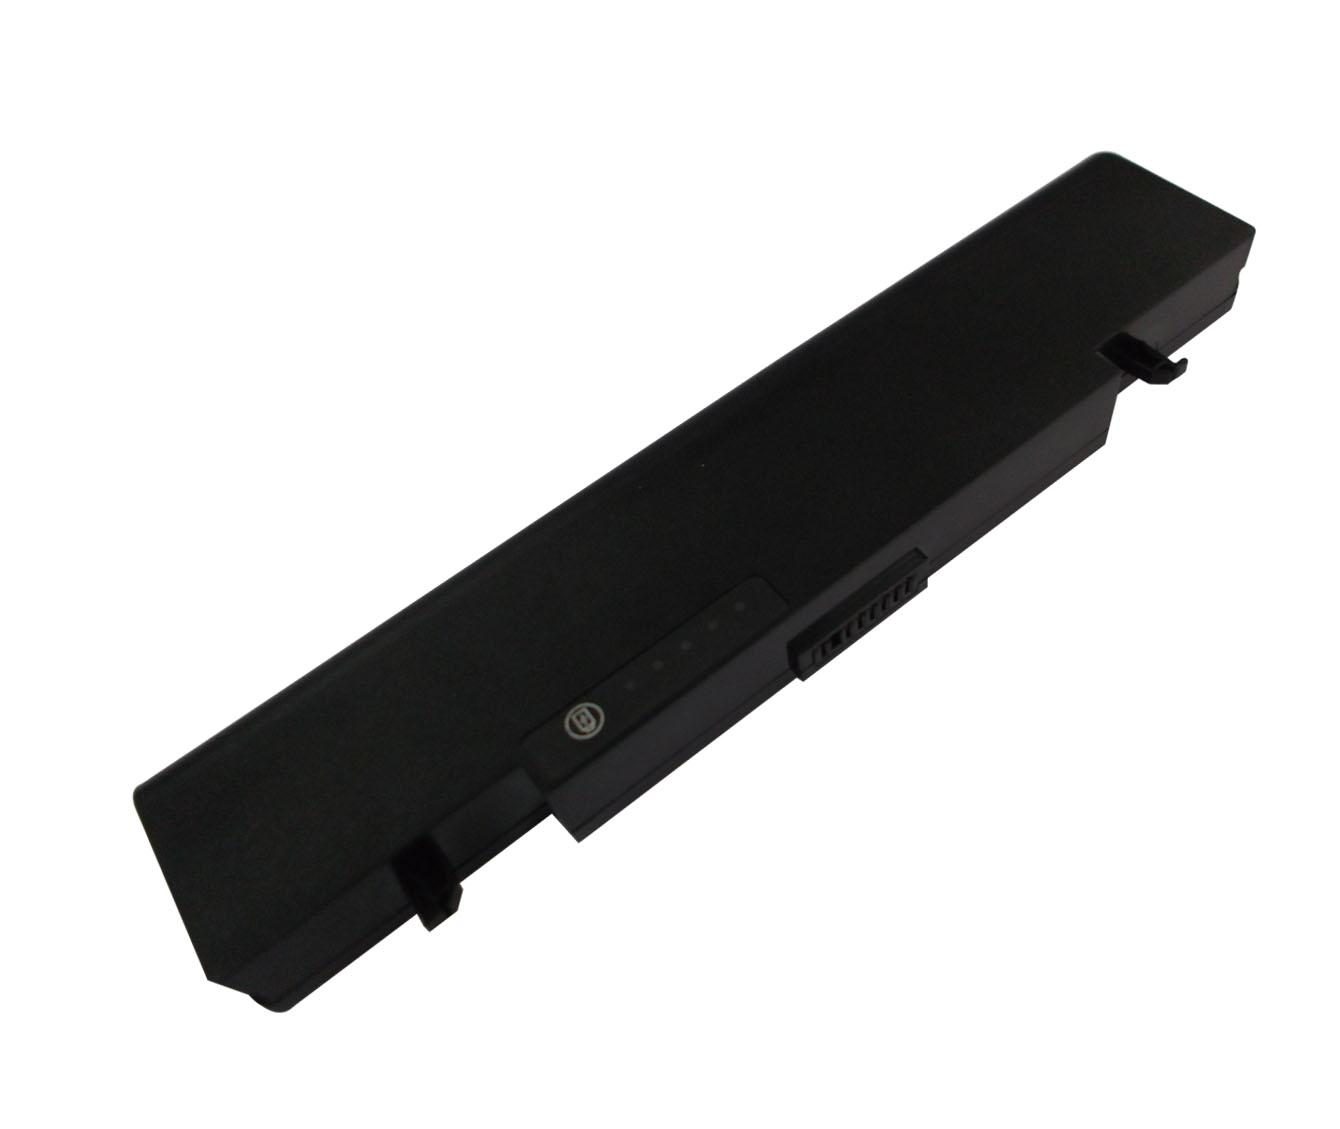 Replacement Laptop Battery for SAMSUNG R470 Compatible With R428, R430, R439, R429, R440, R466, R467,R468, R470,R718, R720, R507,  RV510, X360Series